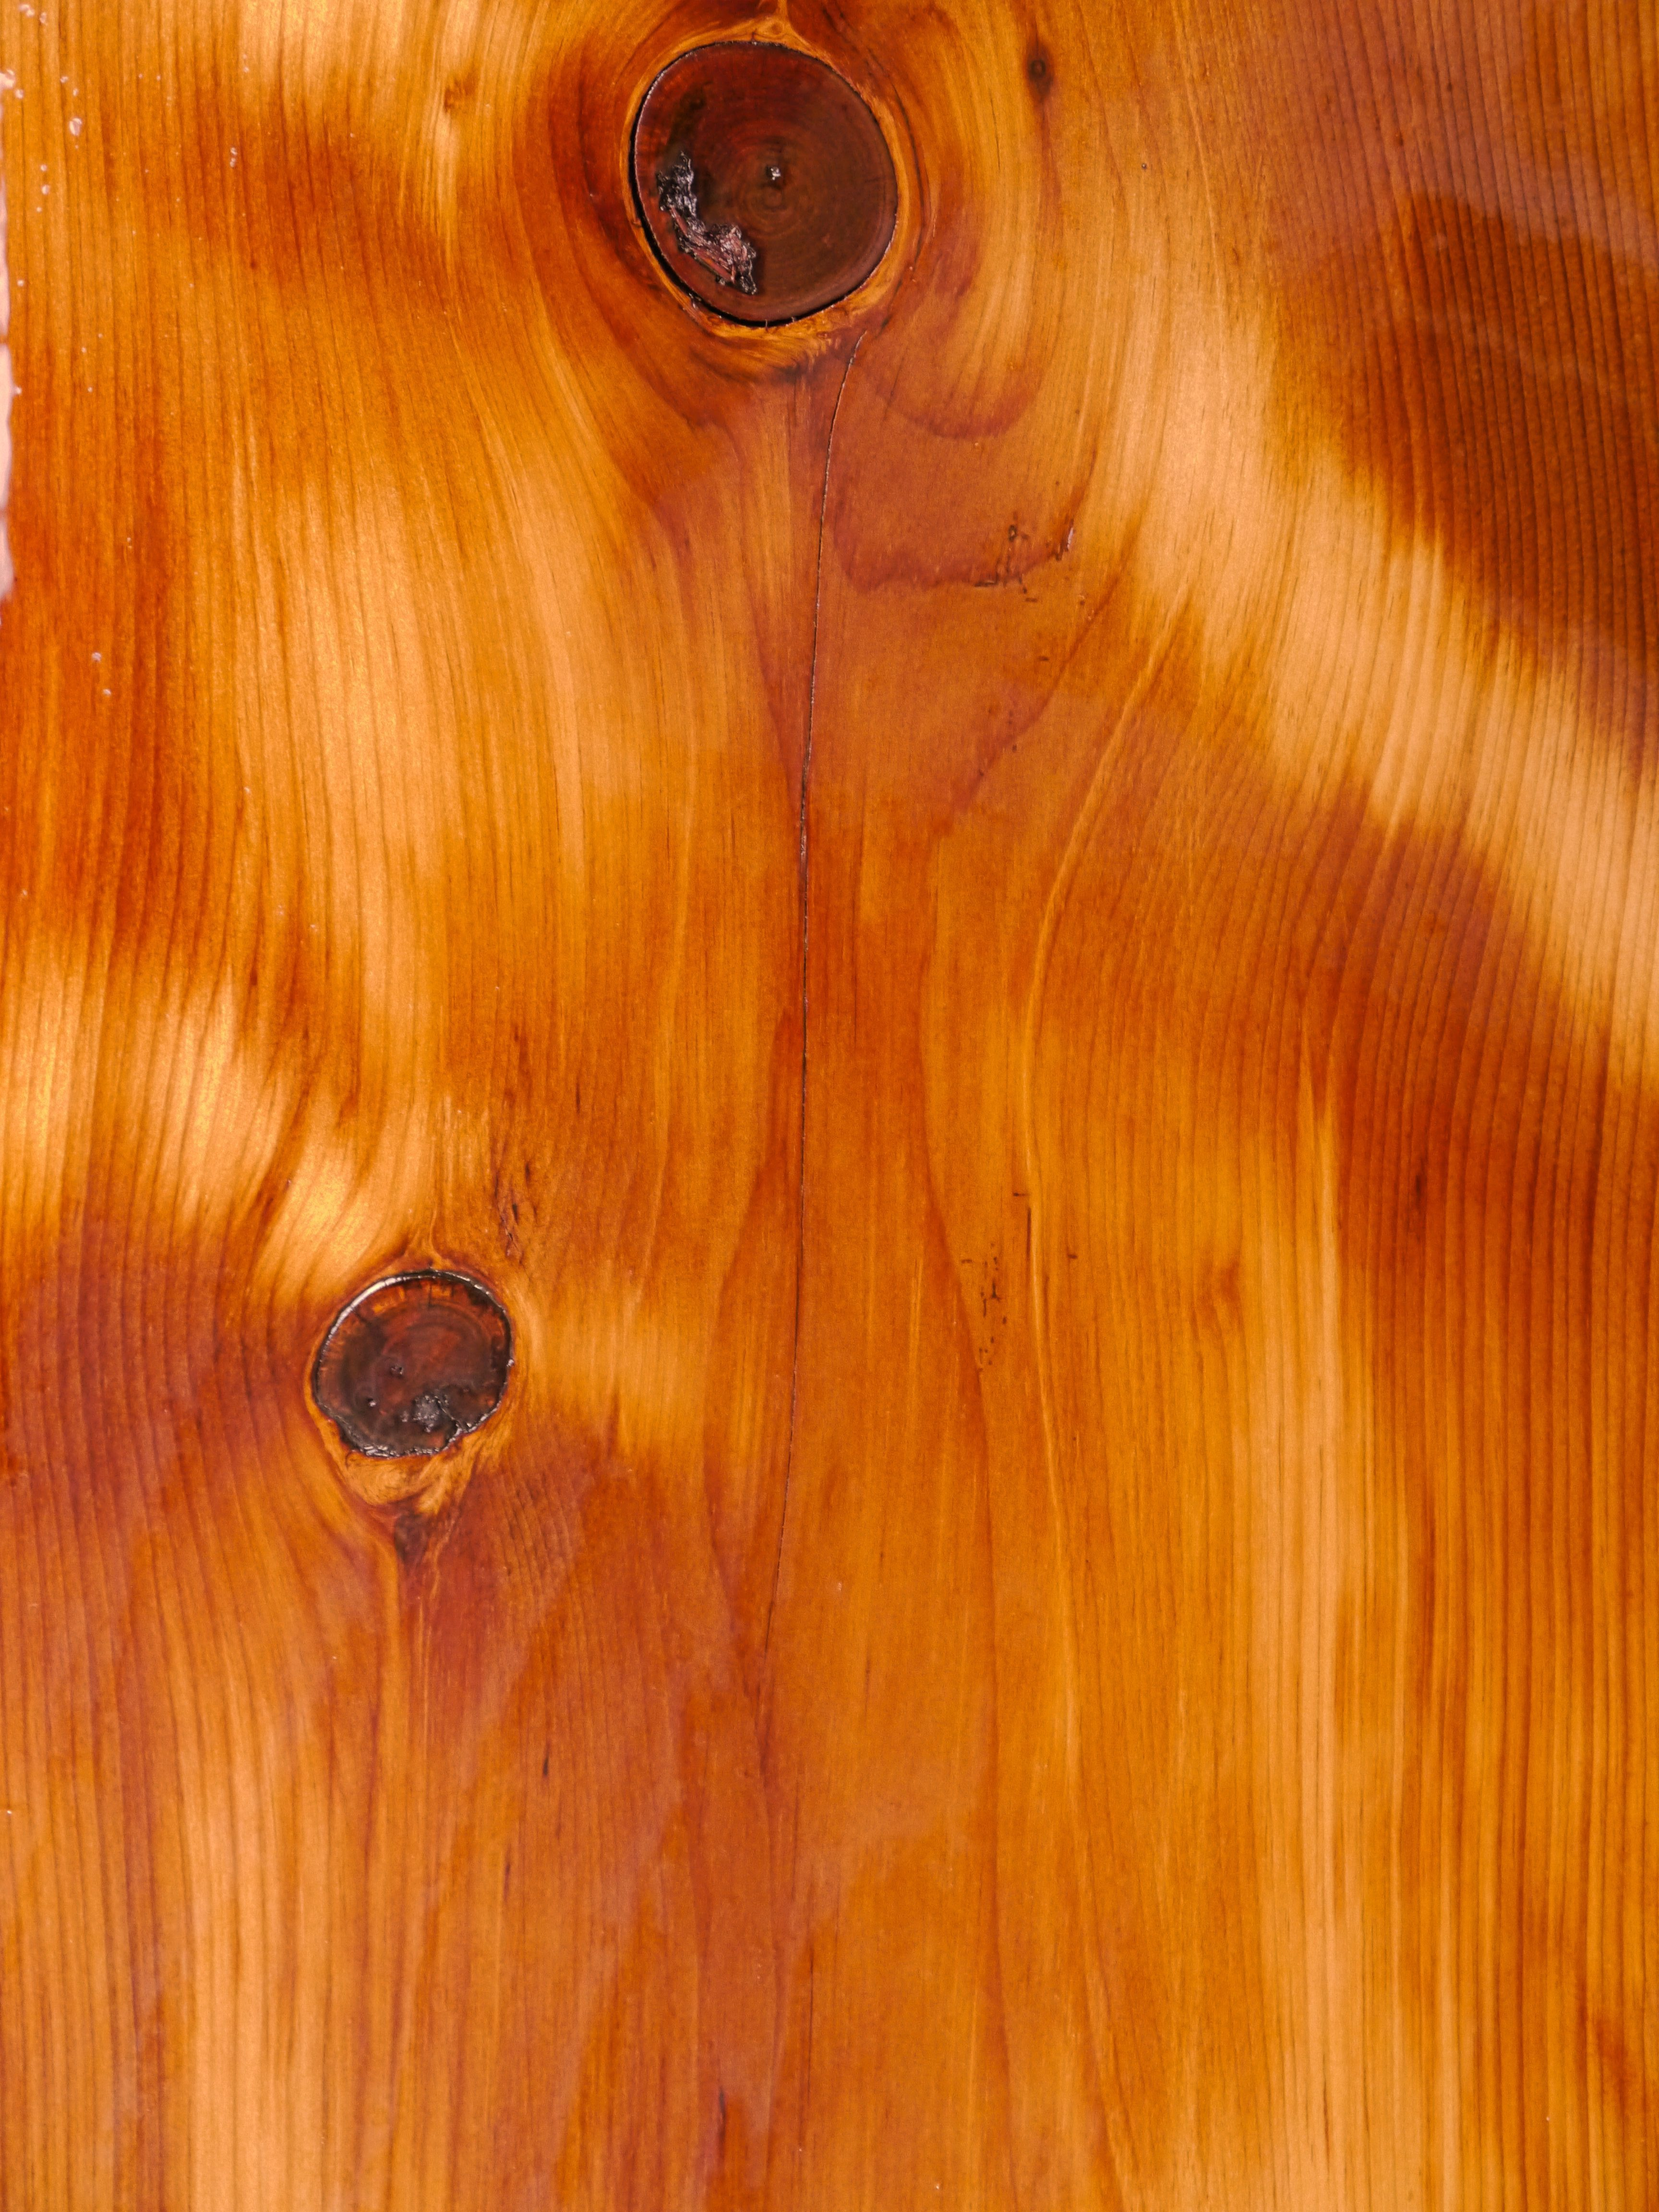 Reclaimed Pumpkin Pine displays the rich patina only achievable through aging and the right conditions.